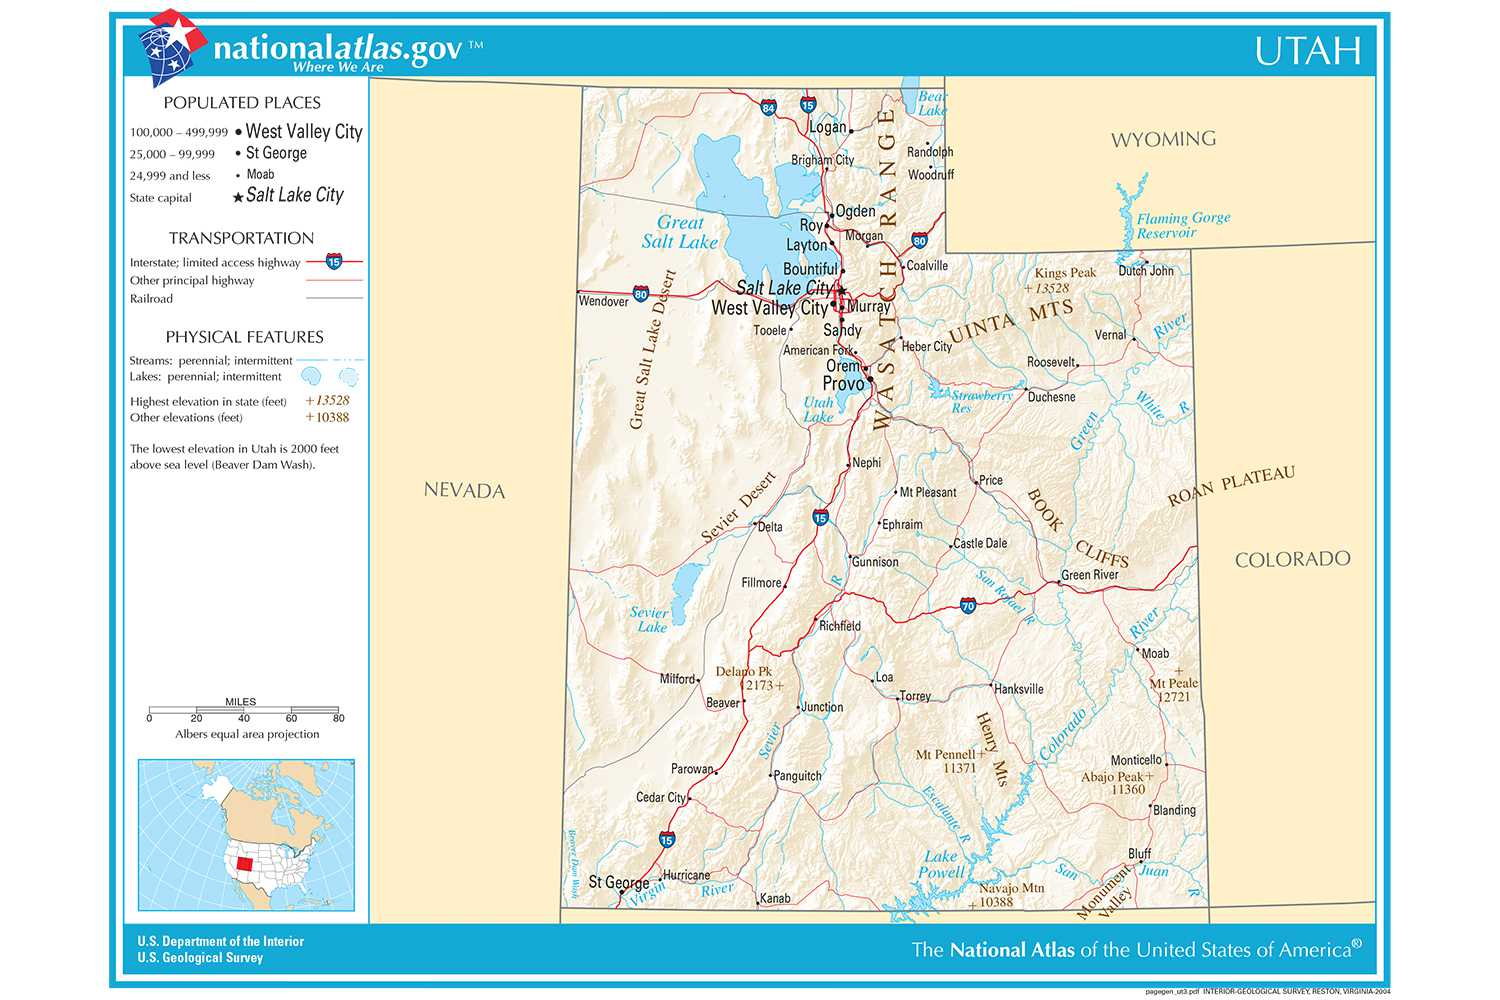 Pueblos New Mexico Map.Maps Of The Southwestern Us For Trip Planning